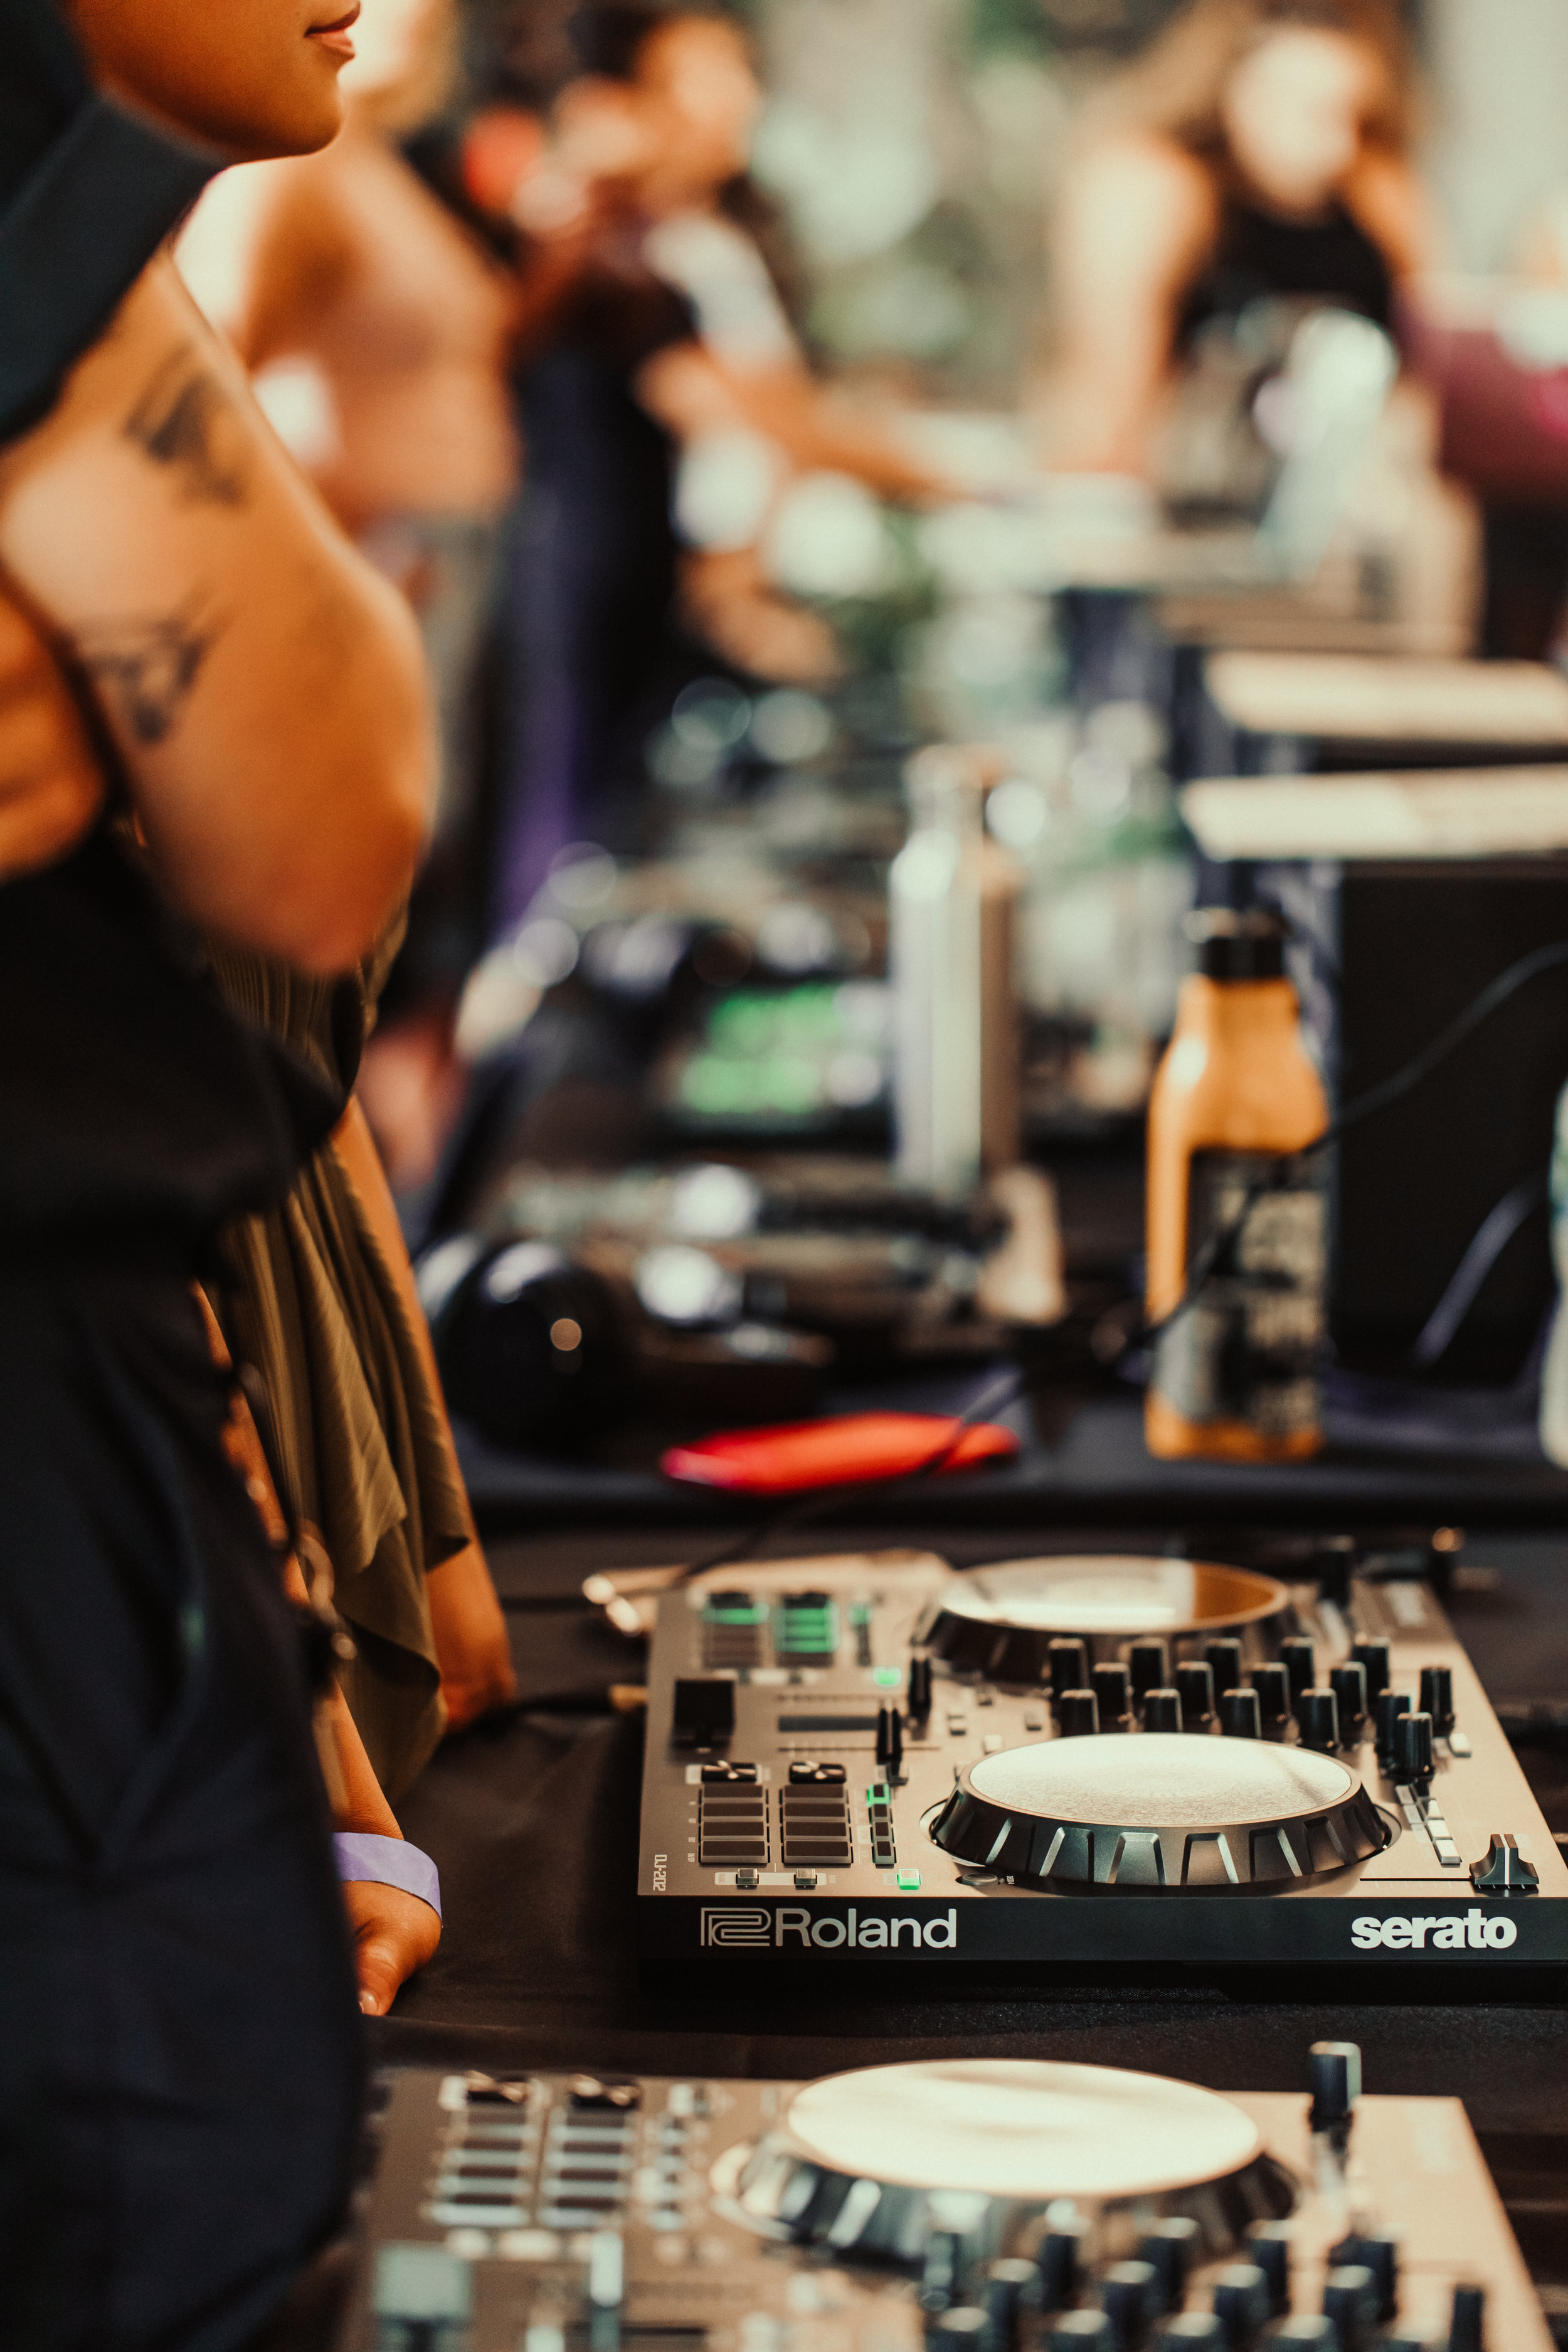 Roland provided Serato DJ-202 controllers and Mackie provided DJ monitors for everyone to practice on.